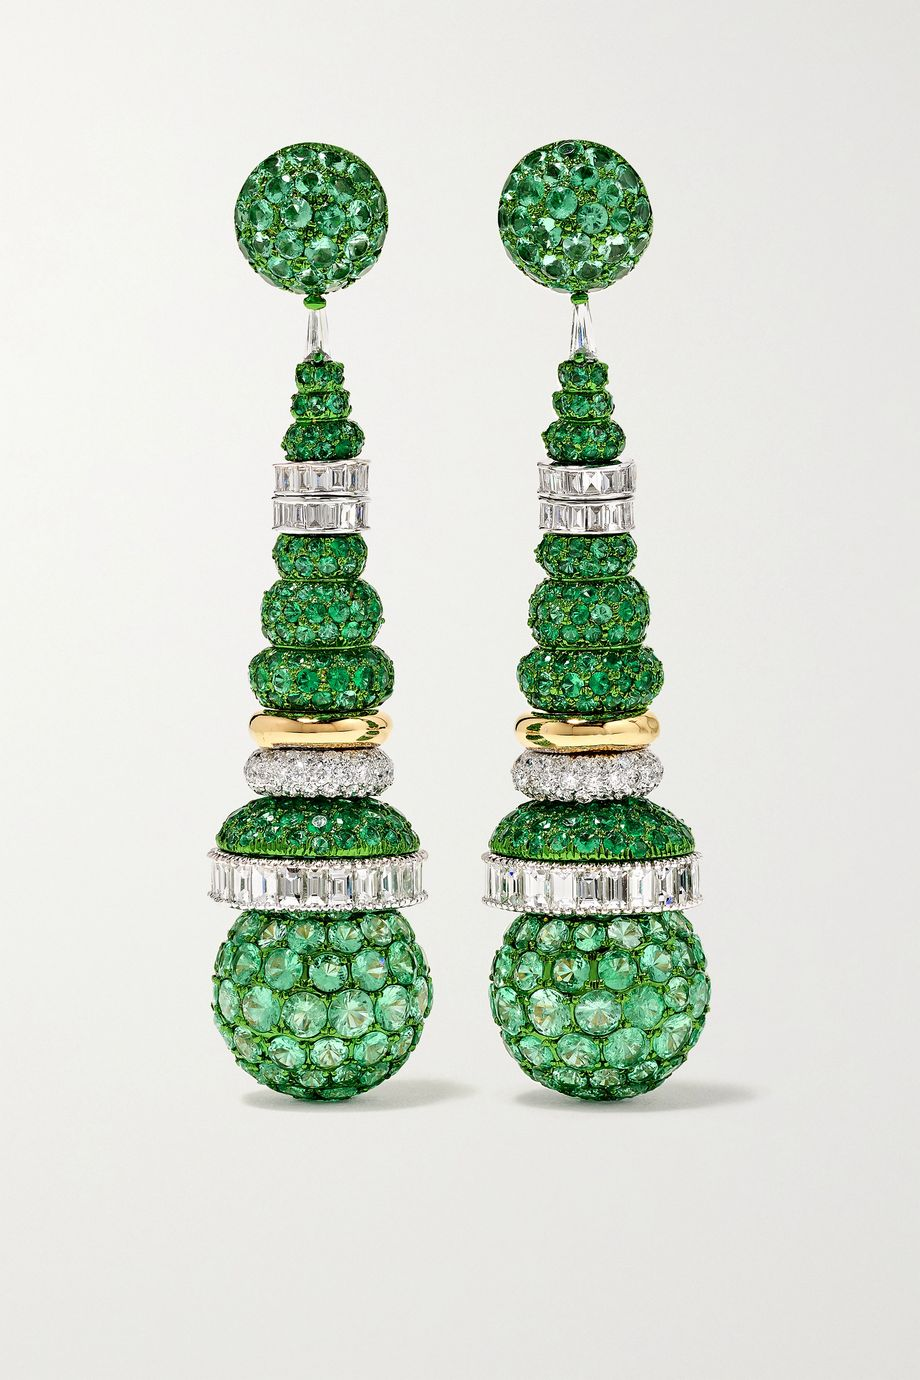 Bina Goenka 18-karat white and yellow gold, emerald and diamond earrings